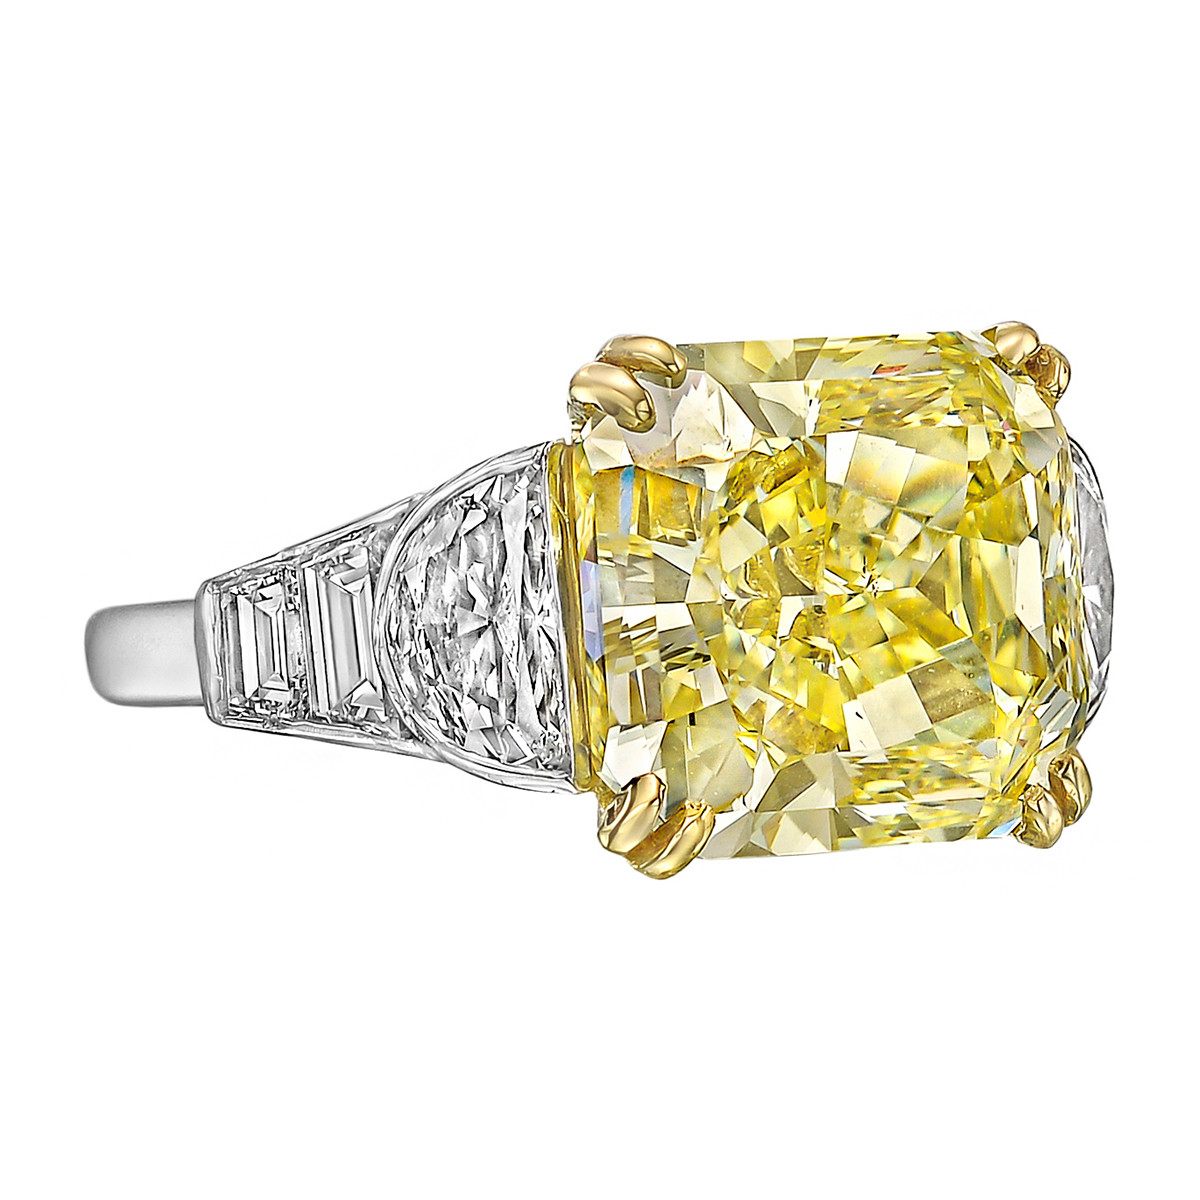 8.74ct Fancy Intense Yellow Diamond Ring (VS2)